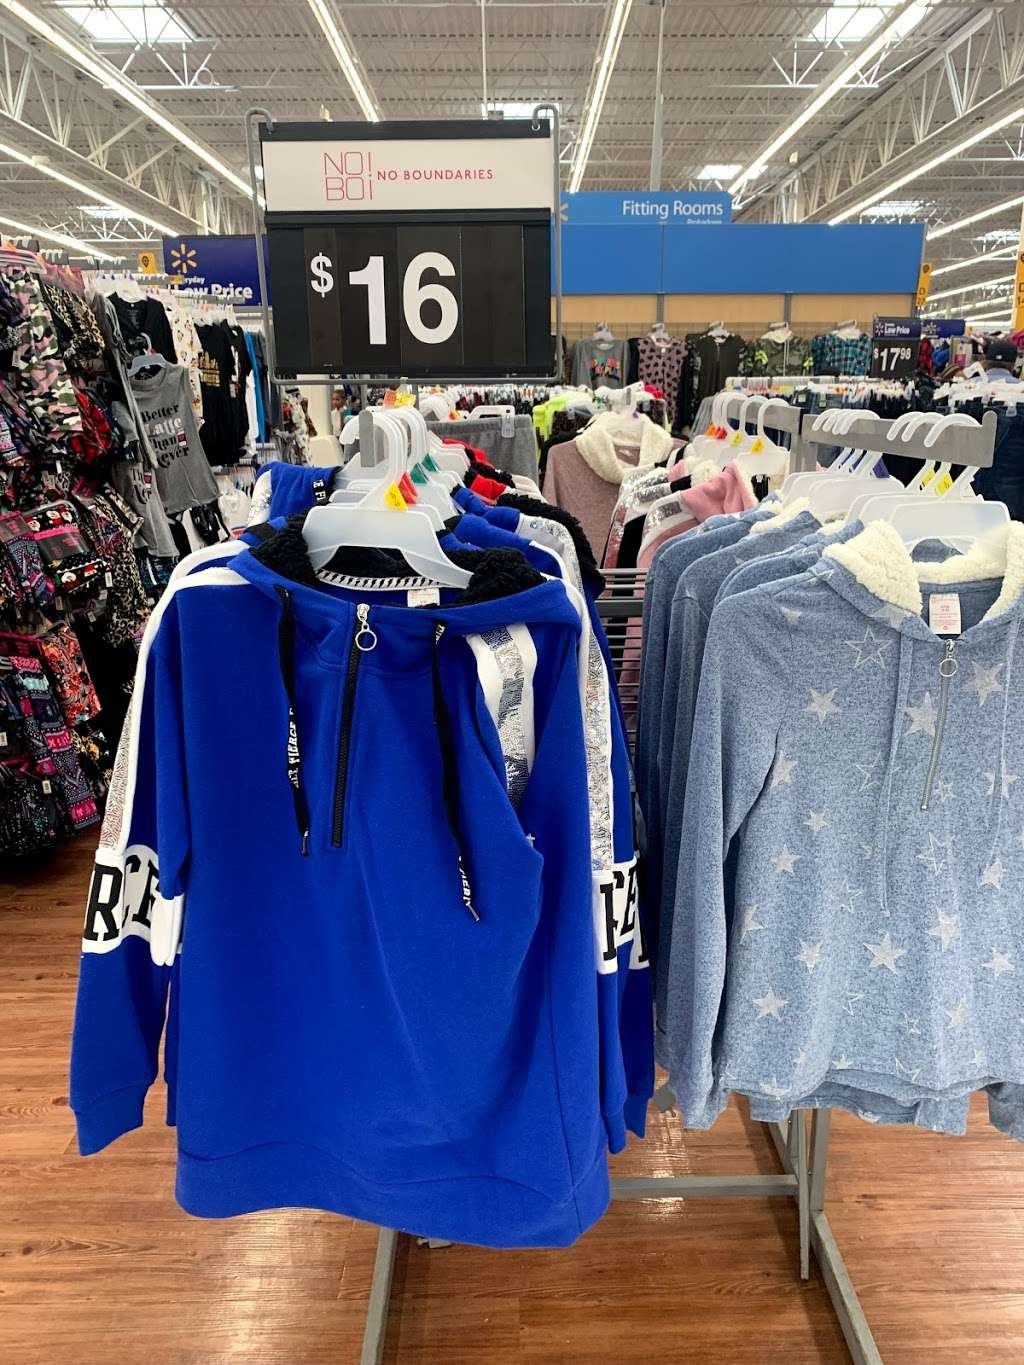 Walmart Supercenter - department store  | Photo 10 of 10 | Address: 2501 Lakeview Pkwy, Rowlett, TX 75088, USA | Phone: (214) 607-9839